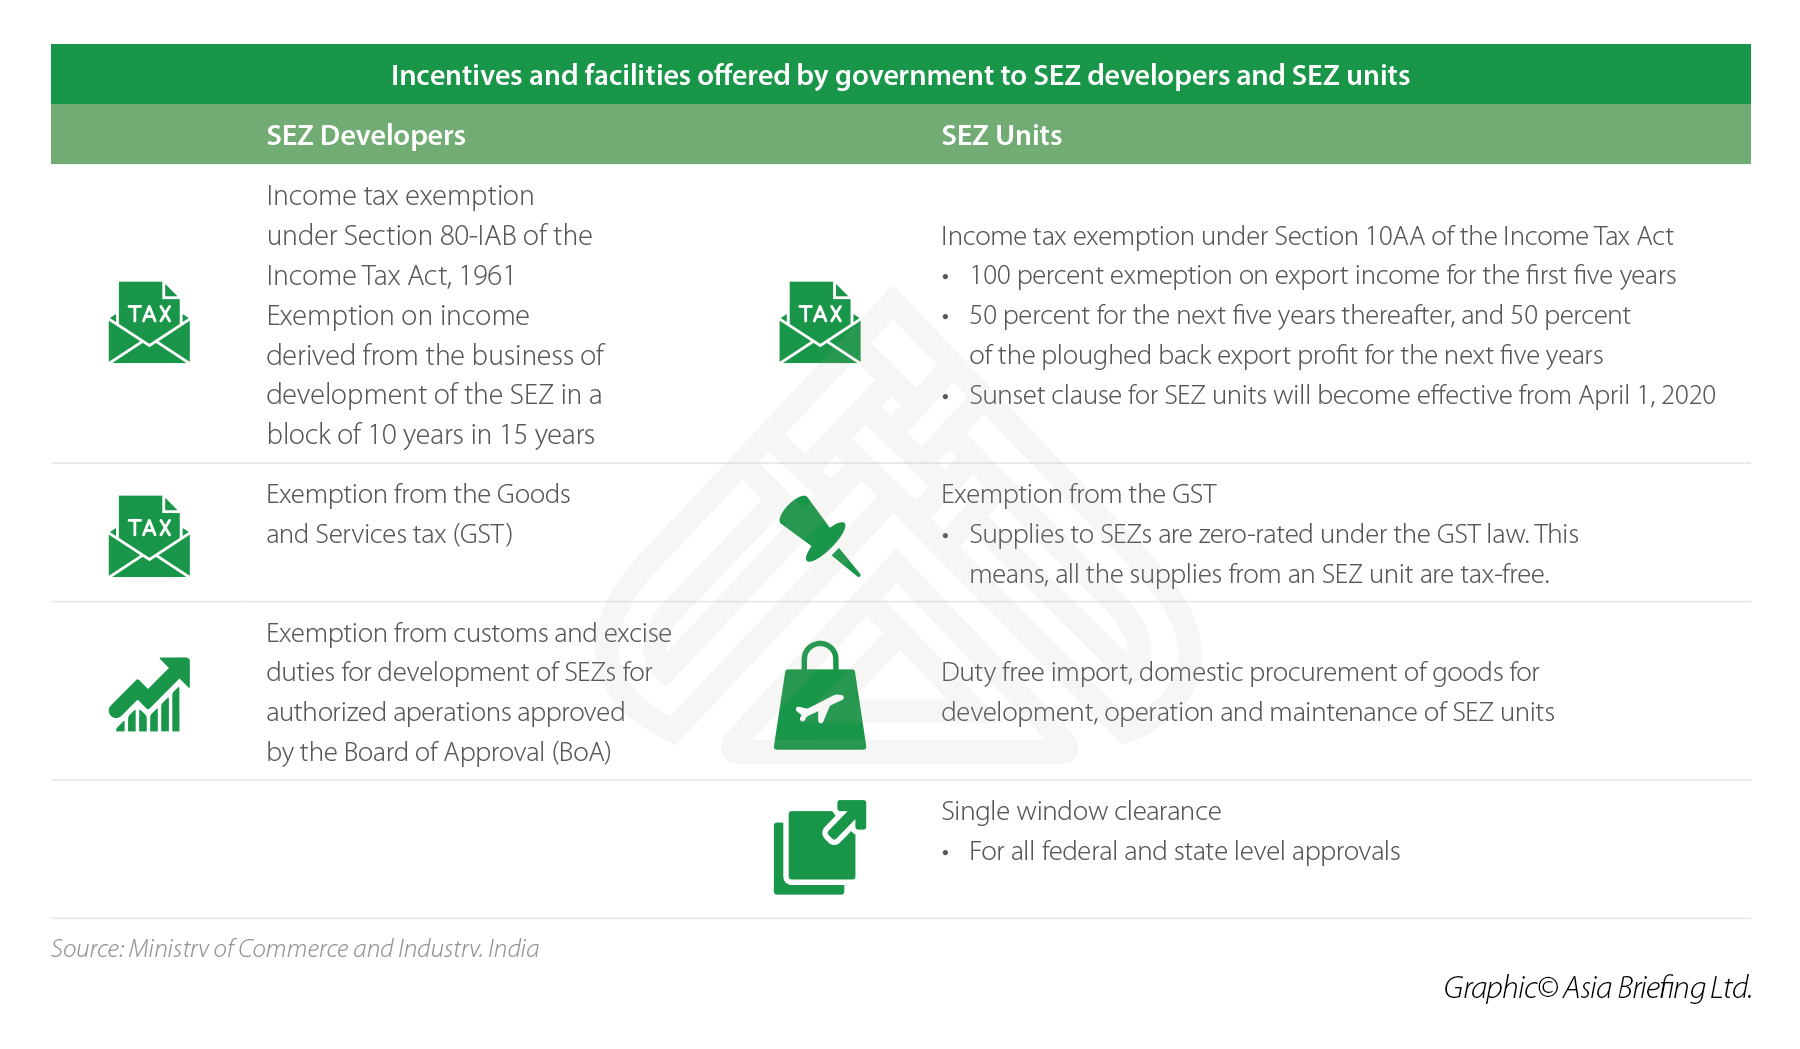 Incentives Offered by the Indian Government to SEZ Developers & Units